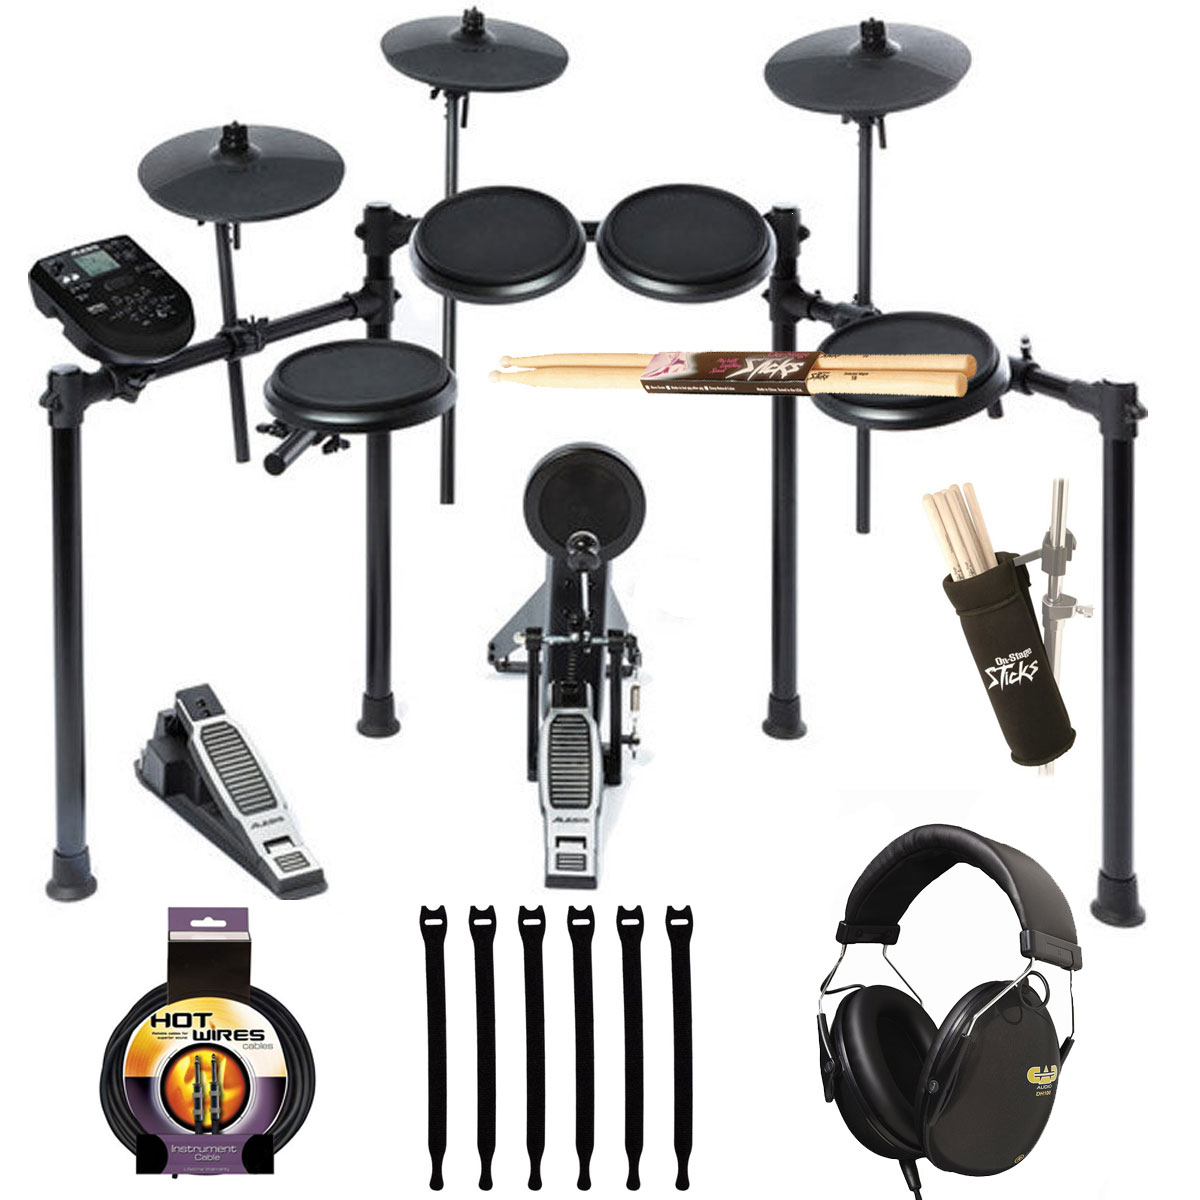 Alesis Nitro Drum Kit, 8-Piece Electronic Kit with Drum Module, Headphone, Cable + Drum... by Alesis